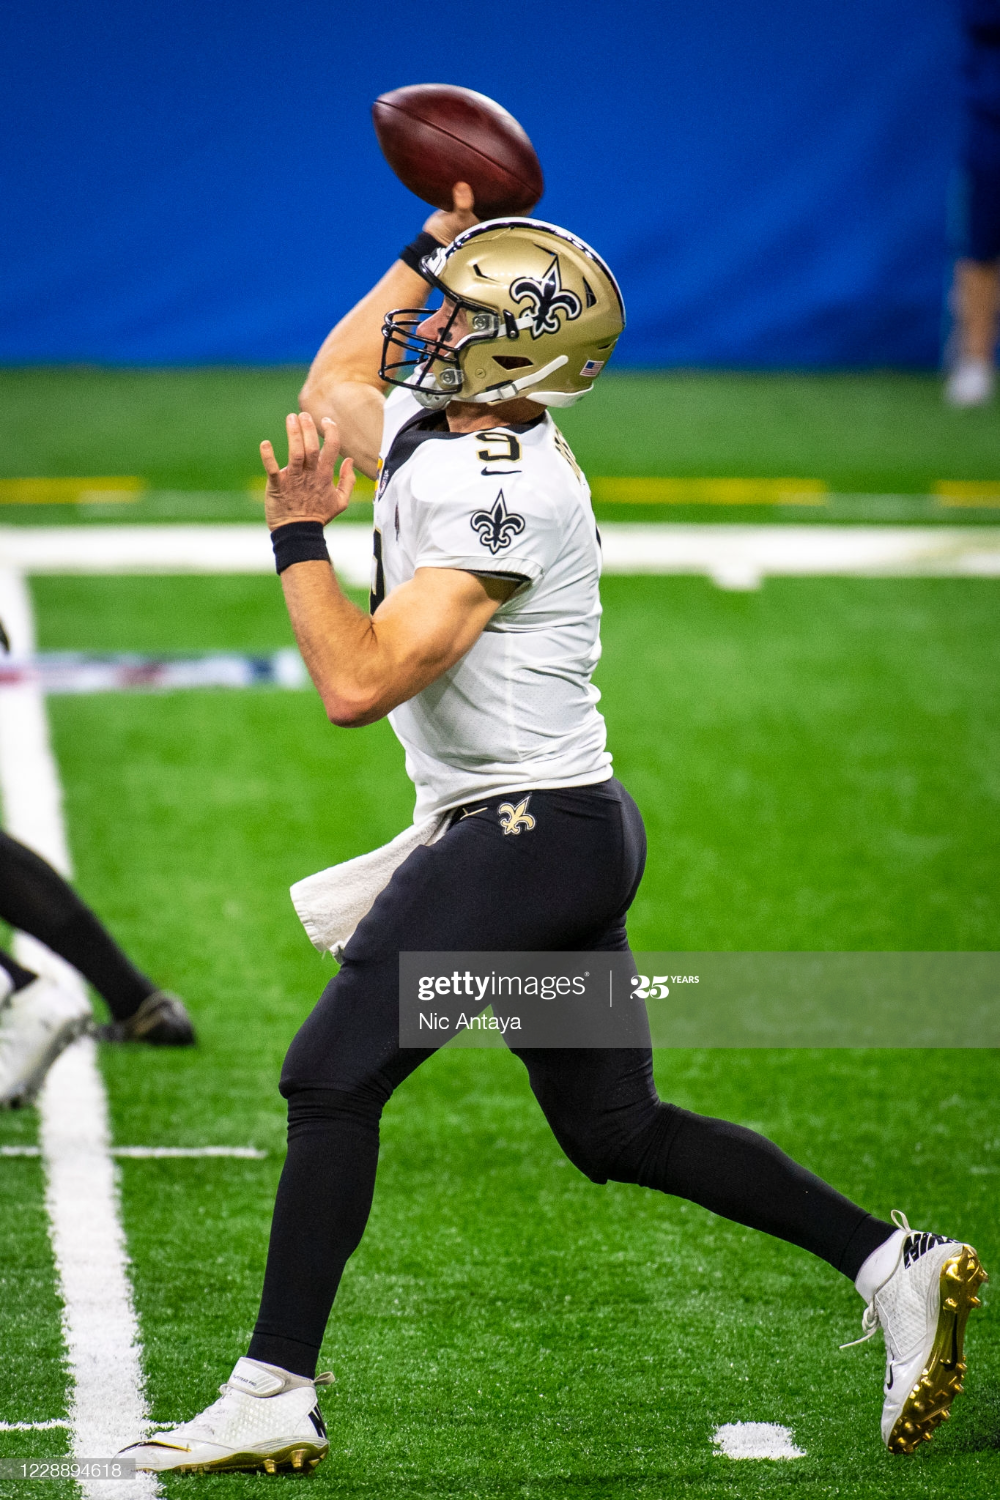 Drew Brees Of The New Orleans Saints Throws The Ball During The New Orleans Saints Football New Orleans Saints Nfl Saints